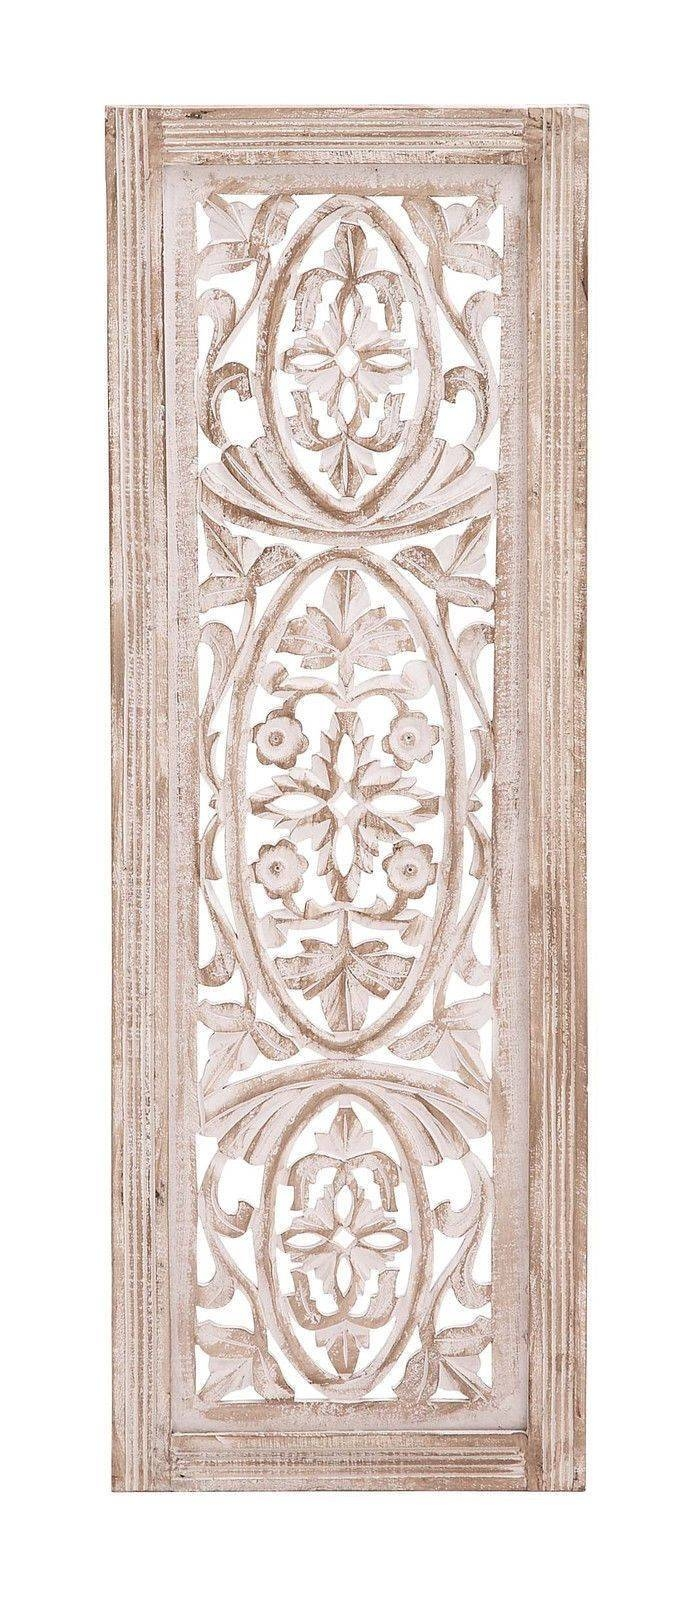 Fascinating Carved Wood Wall Art Panels Carved Wood Wall Download Pertaining To Most Current Wood Carved Wall Art Panels (View 18 of 25)